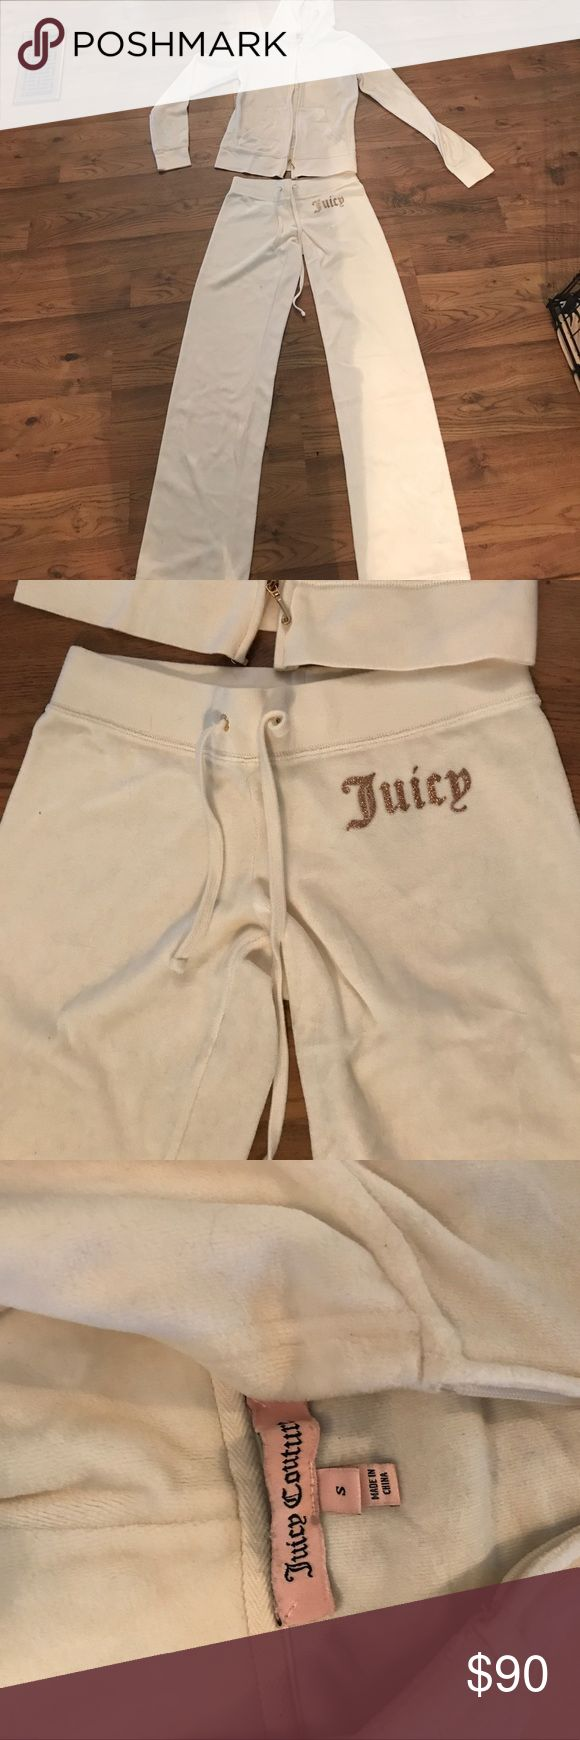 Juicy Couture sweatsuit off white off white Juicy Couture sweatsuit. bottoms size XS zip up size S. gold and bronze design. perfect condition Juicy Couture Other